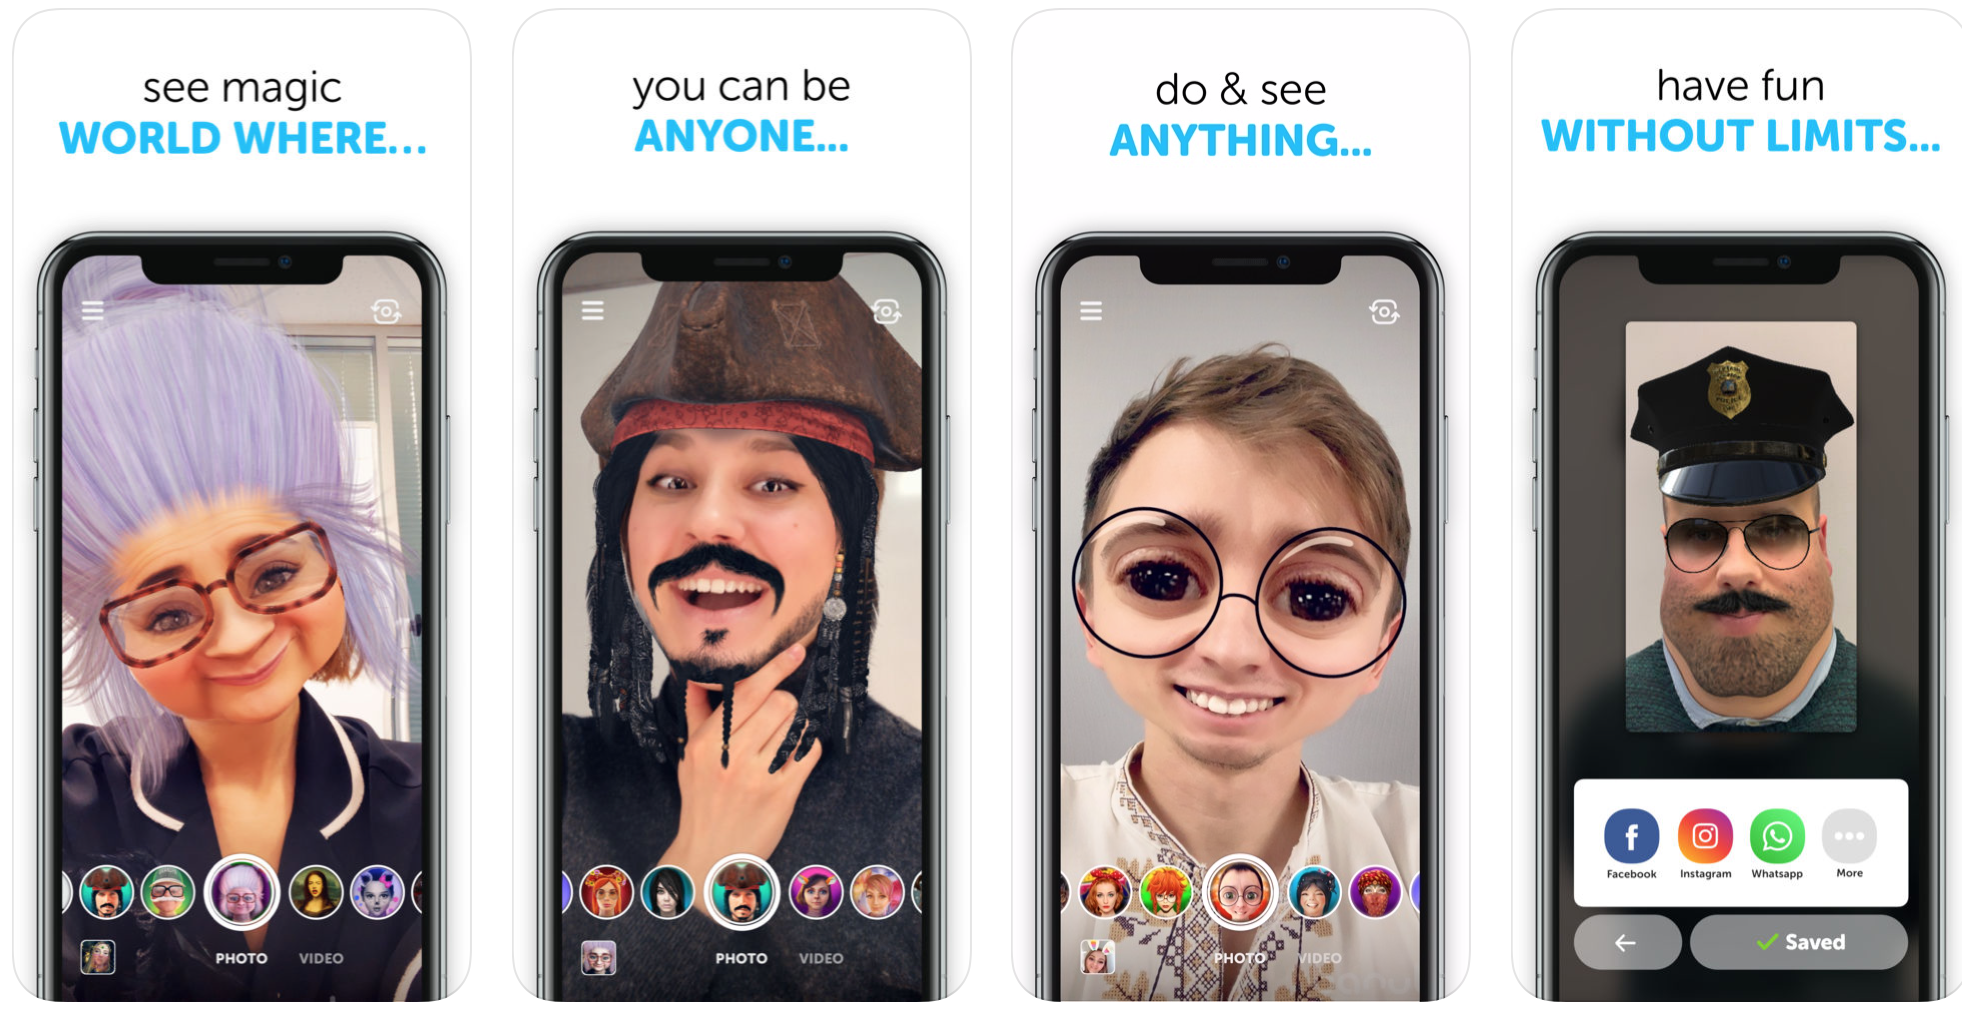 10 Best Face Filter Apps Like Snapchat To Spark Your Creativity [2019]